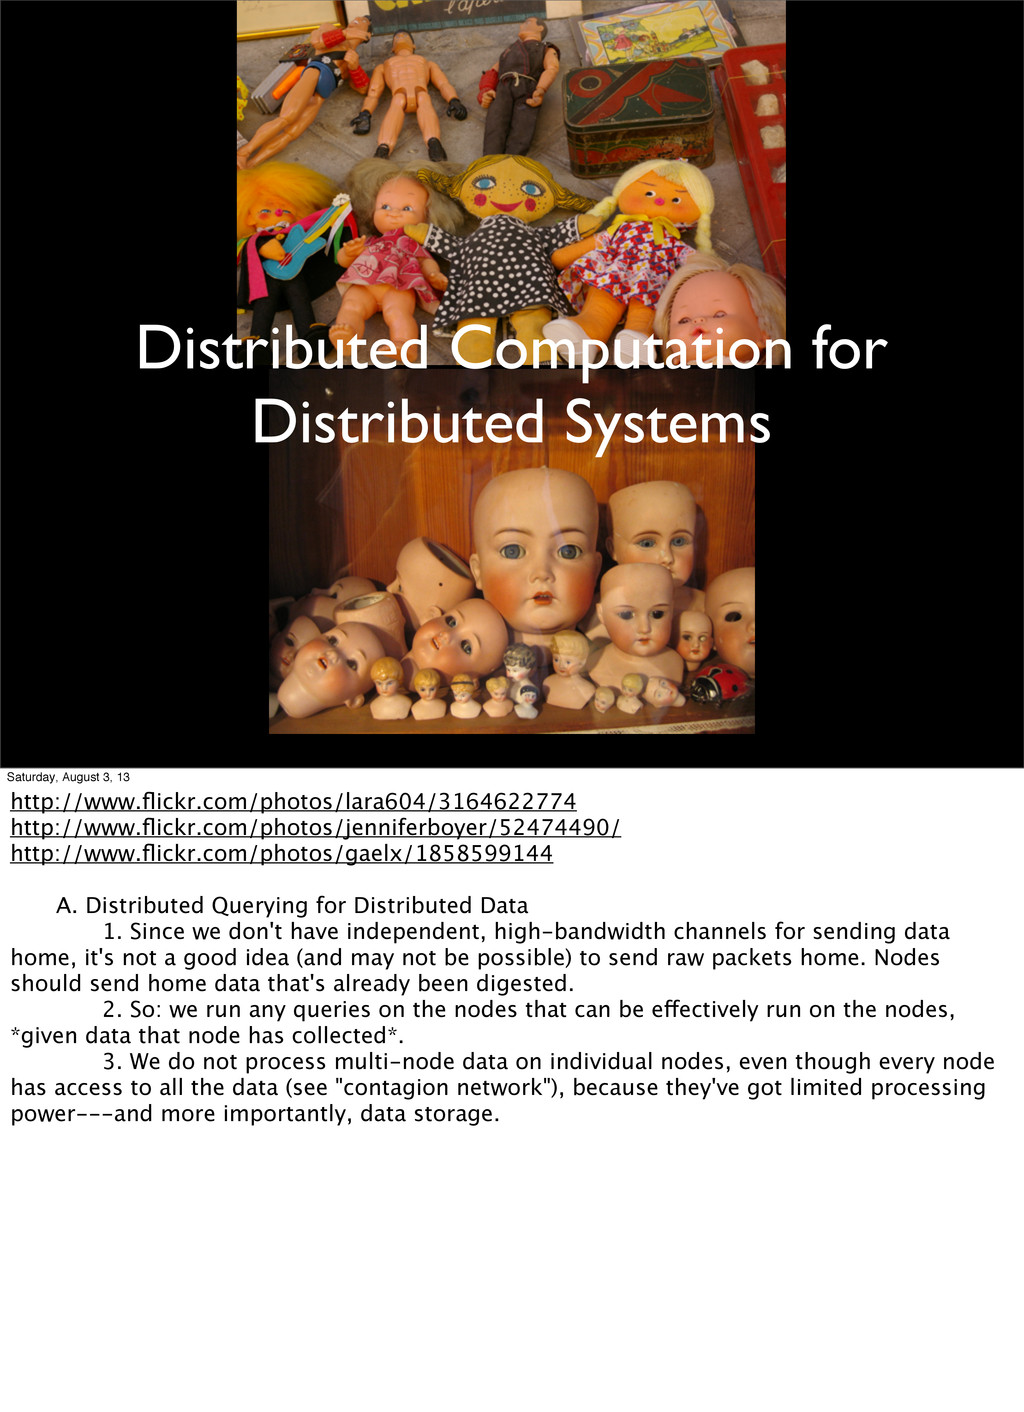 Distributed Computation for Distributed Systems...